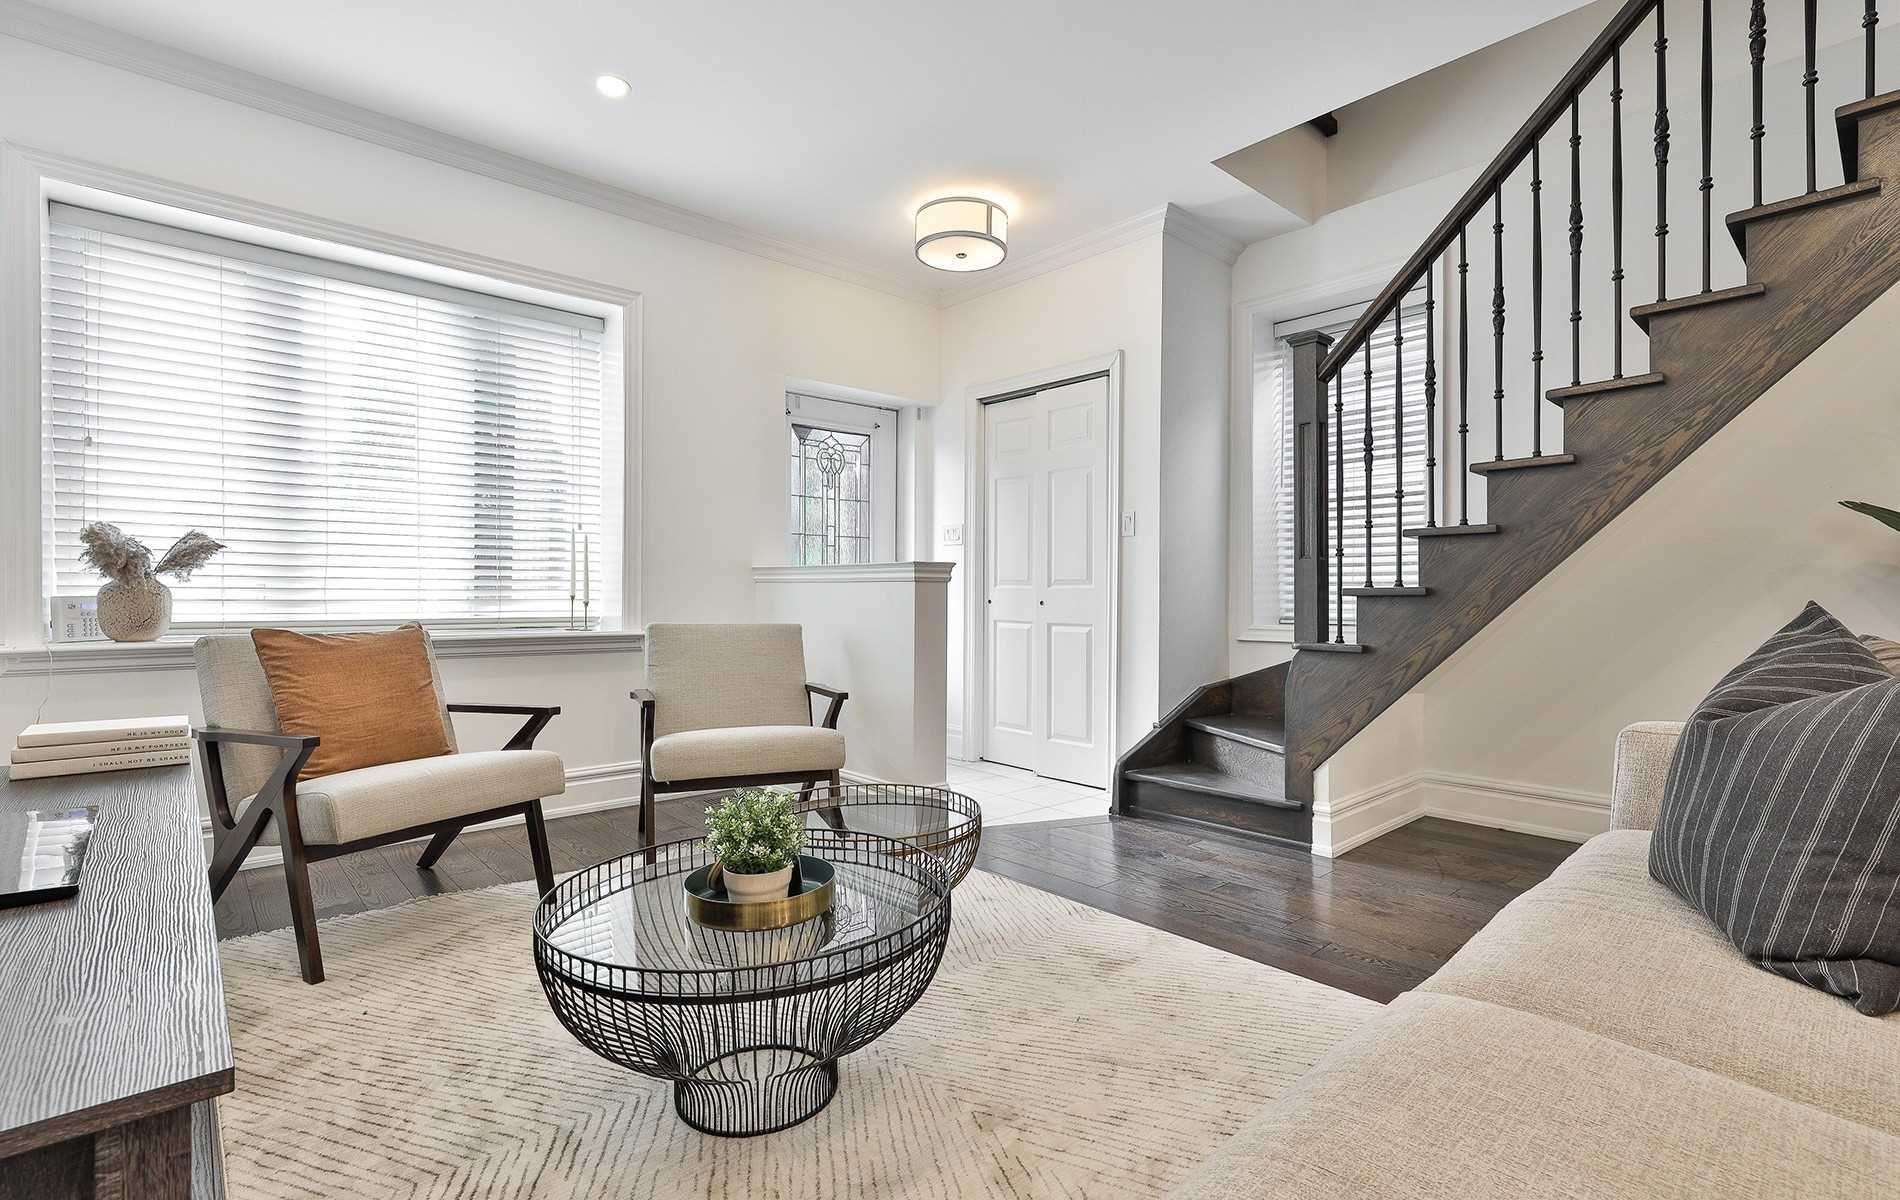 Photo of 118 Northland Ave, Toronto, ON M6N2E2 (MLS # W5326170)